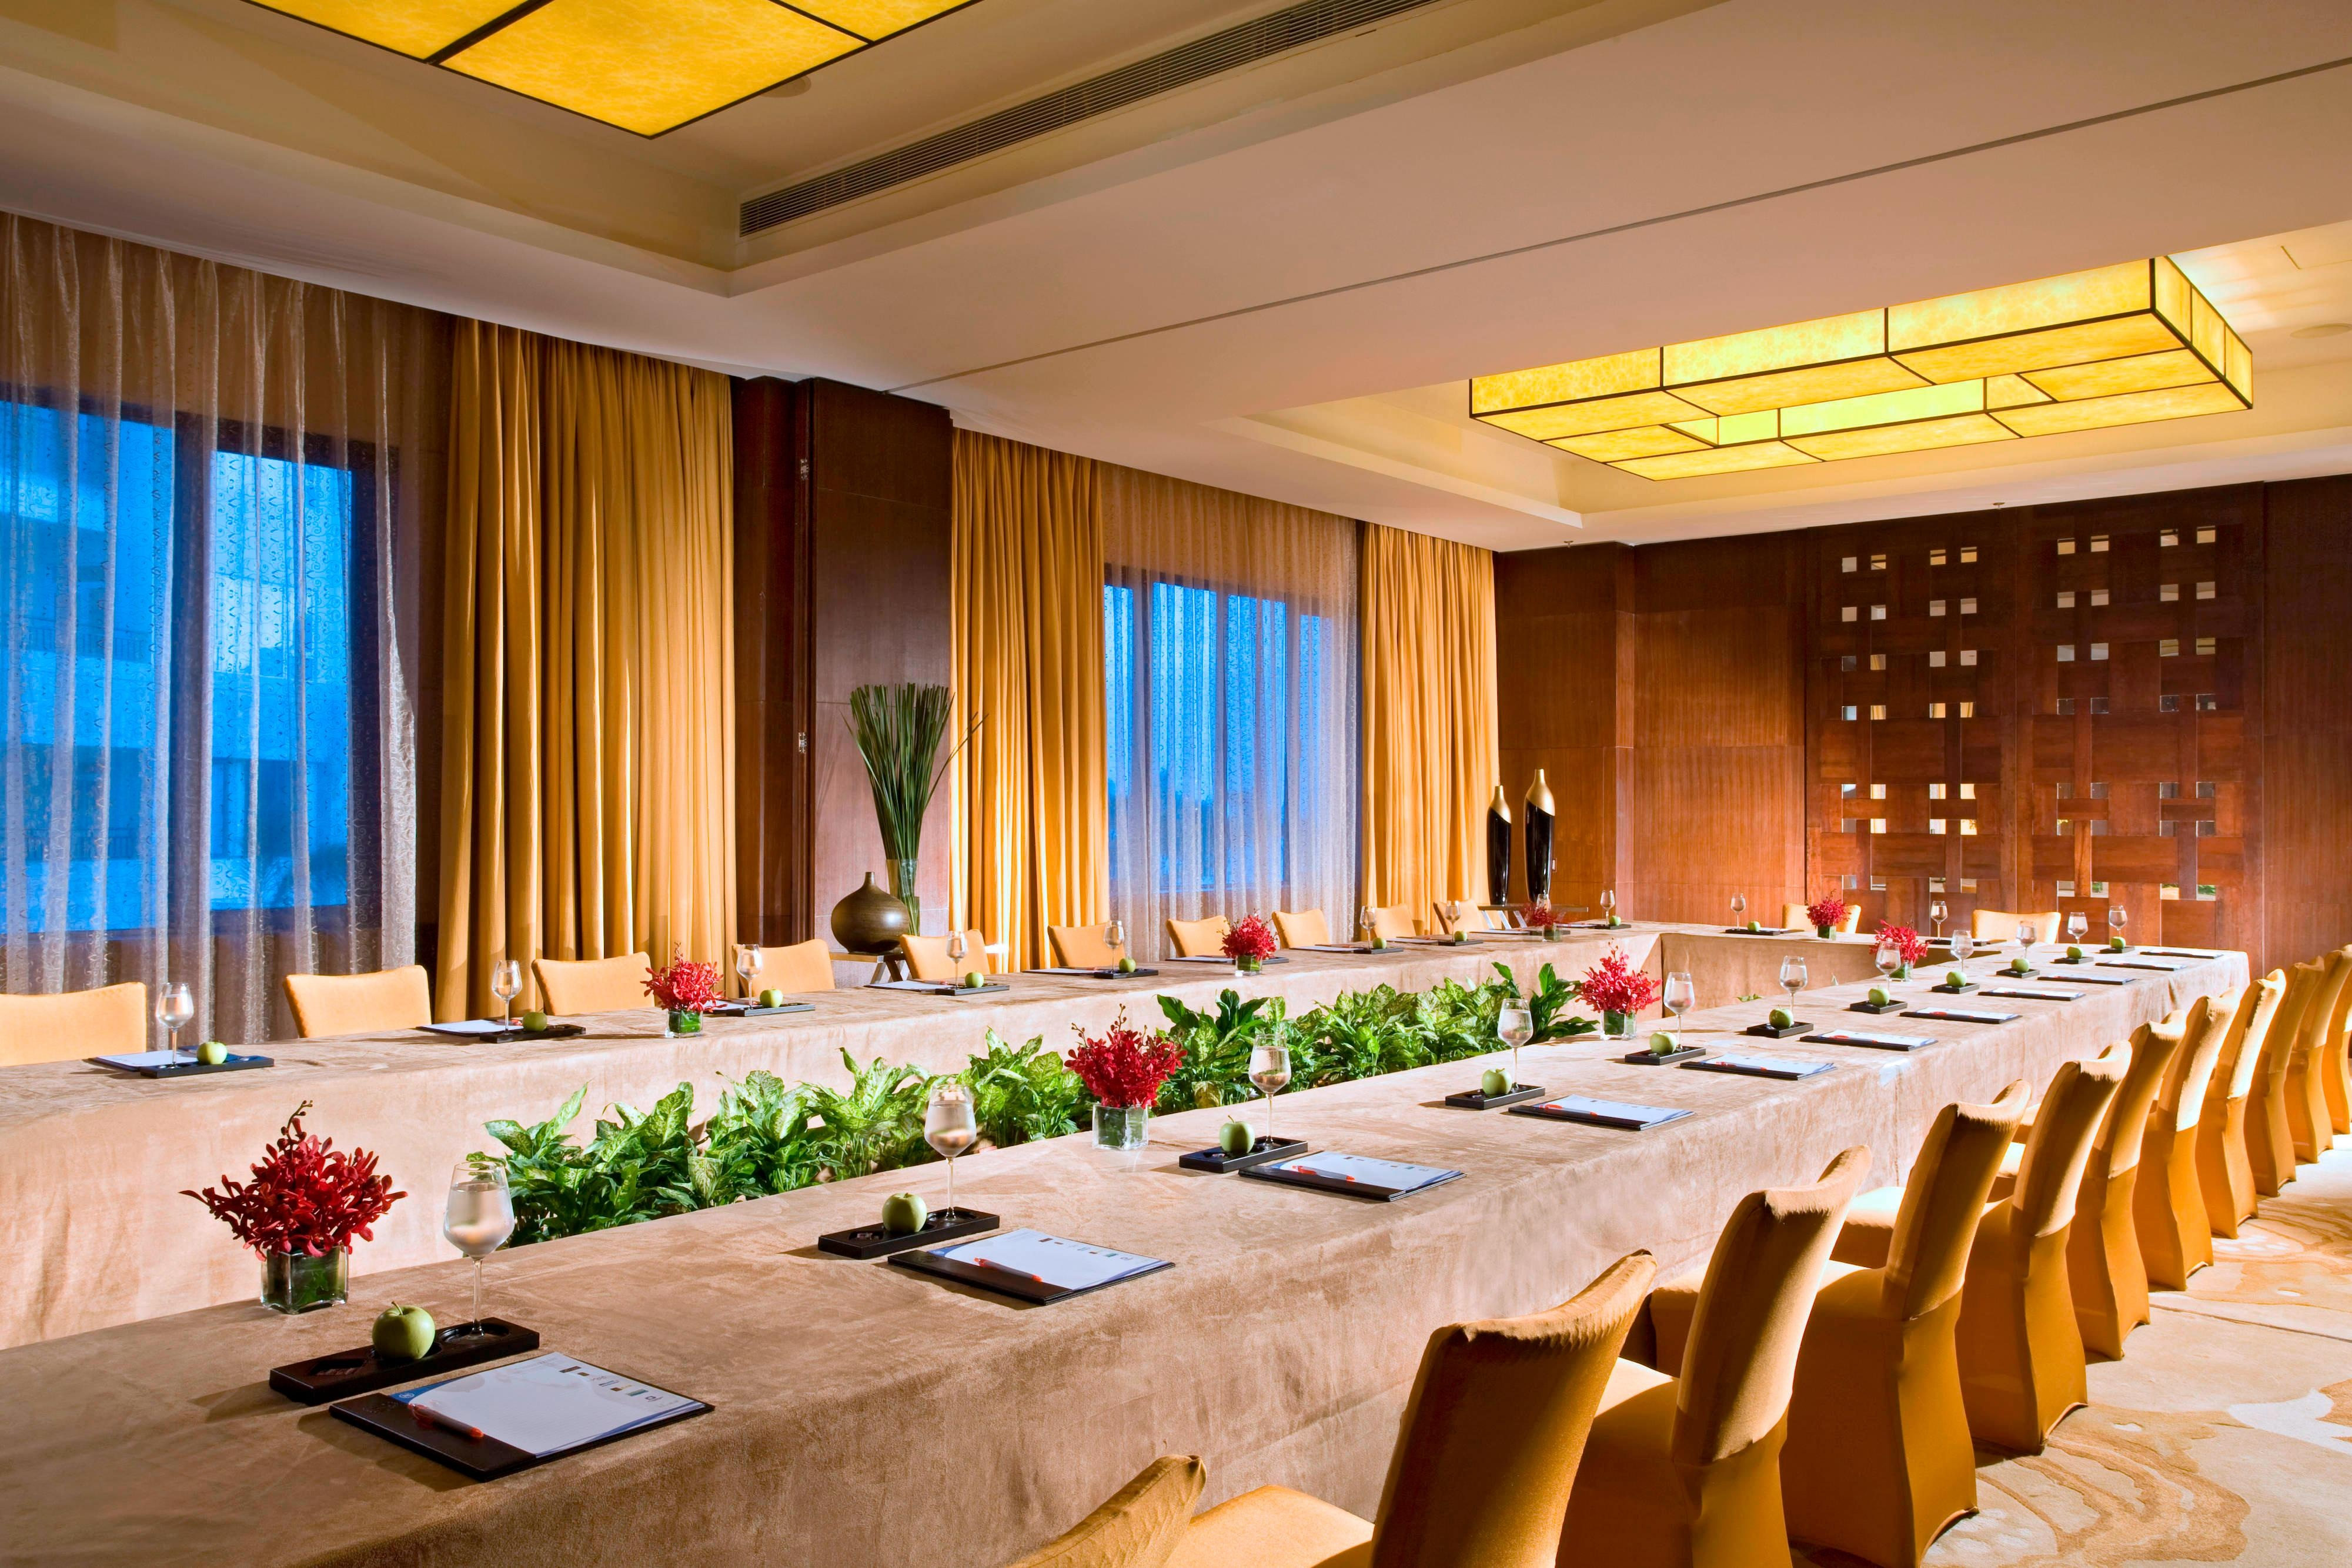 Huidong Room - Meeting